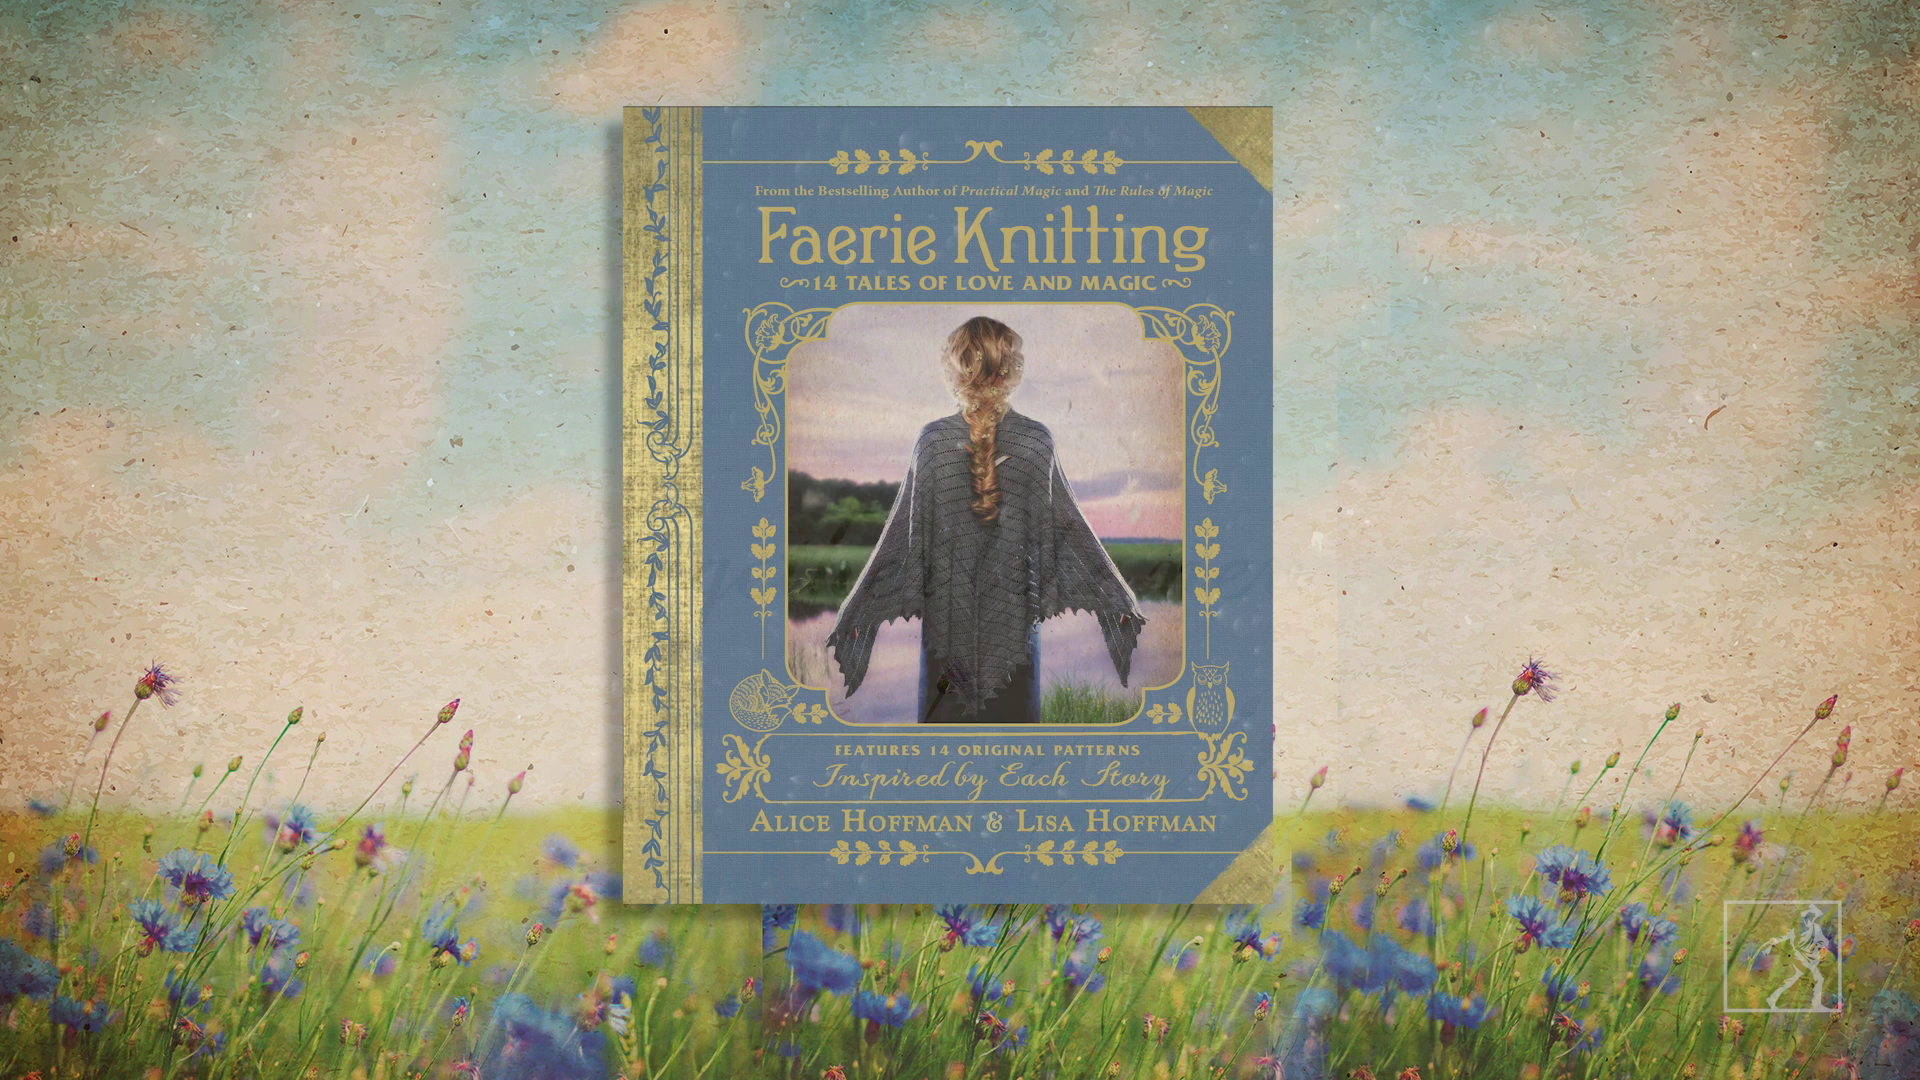 Enter The World Of Faerie Knitting, A Magical Melding Of Words And Yarn